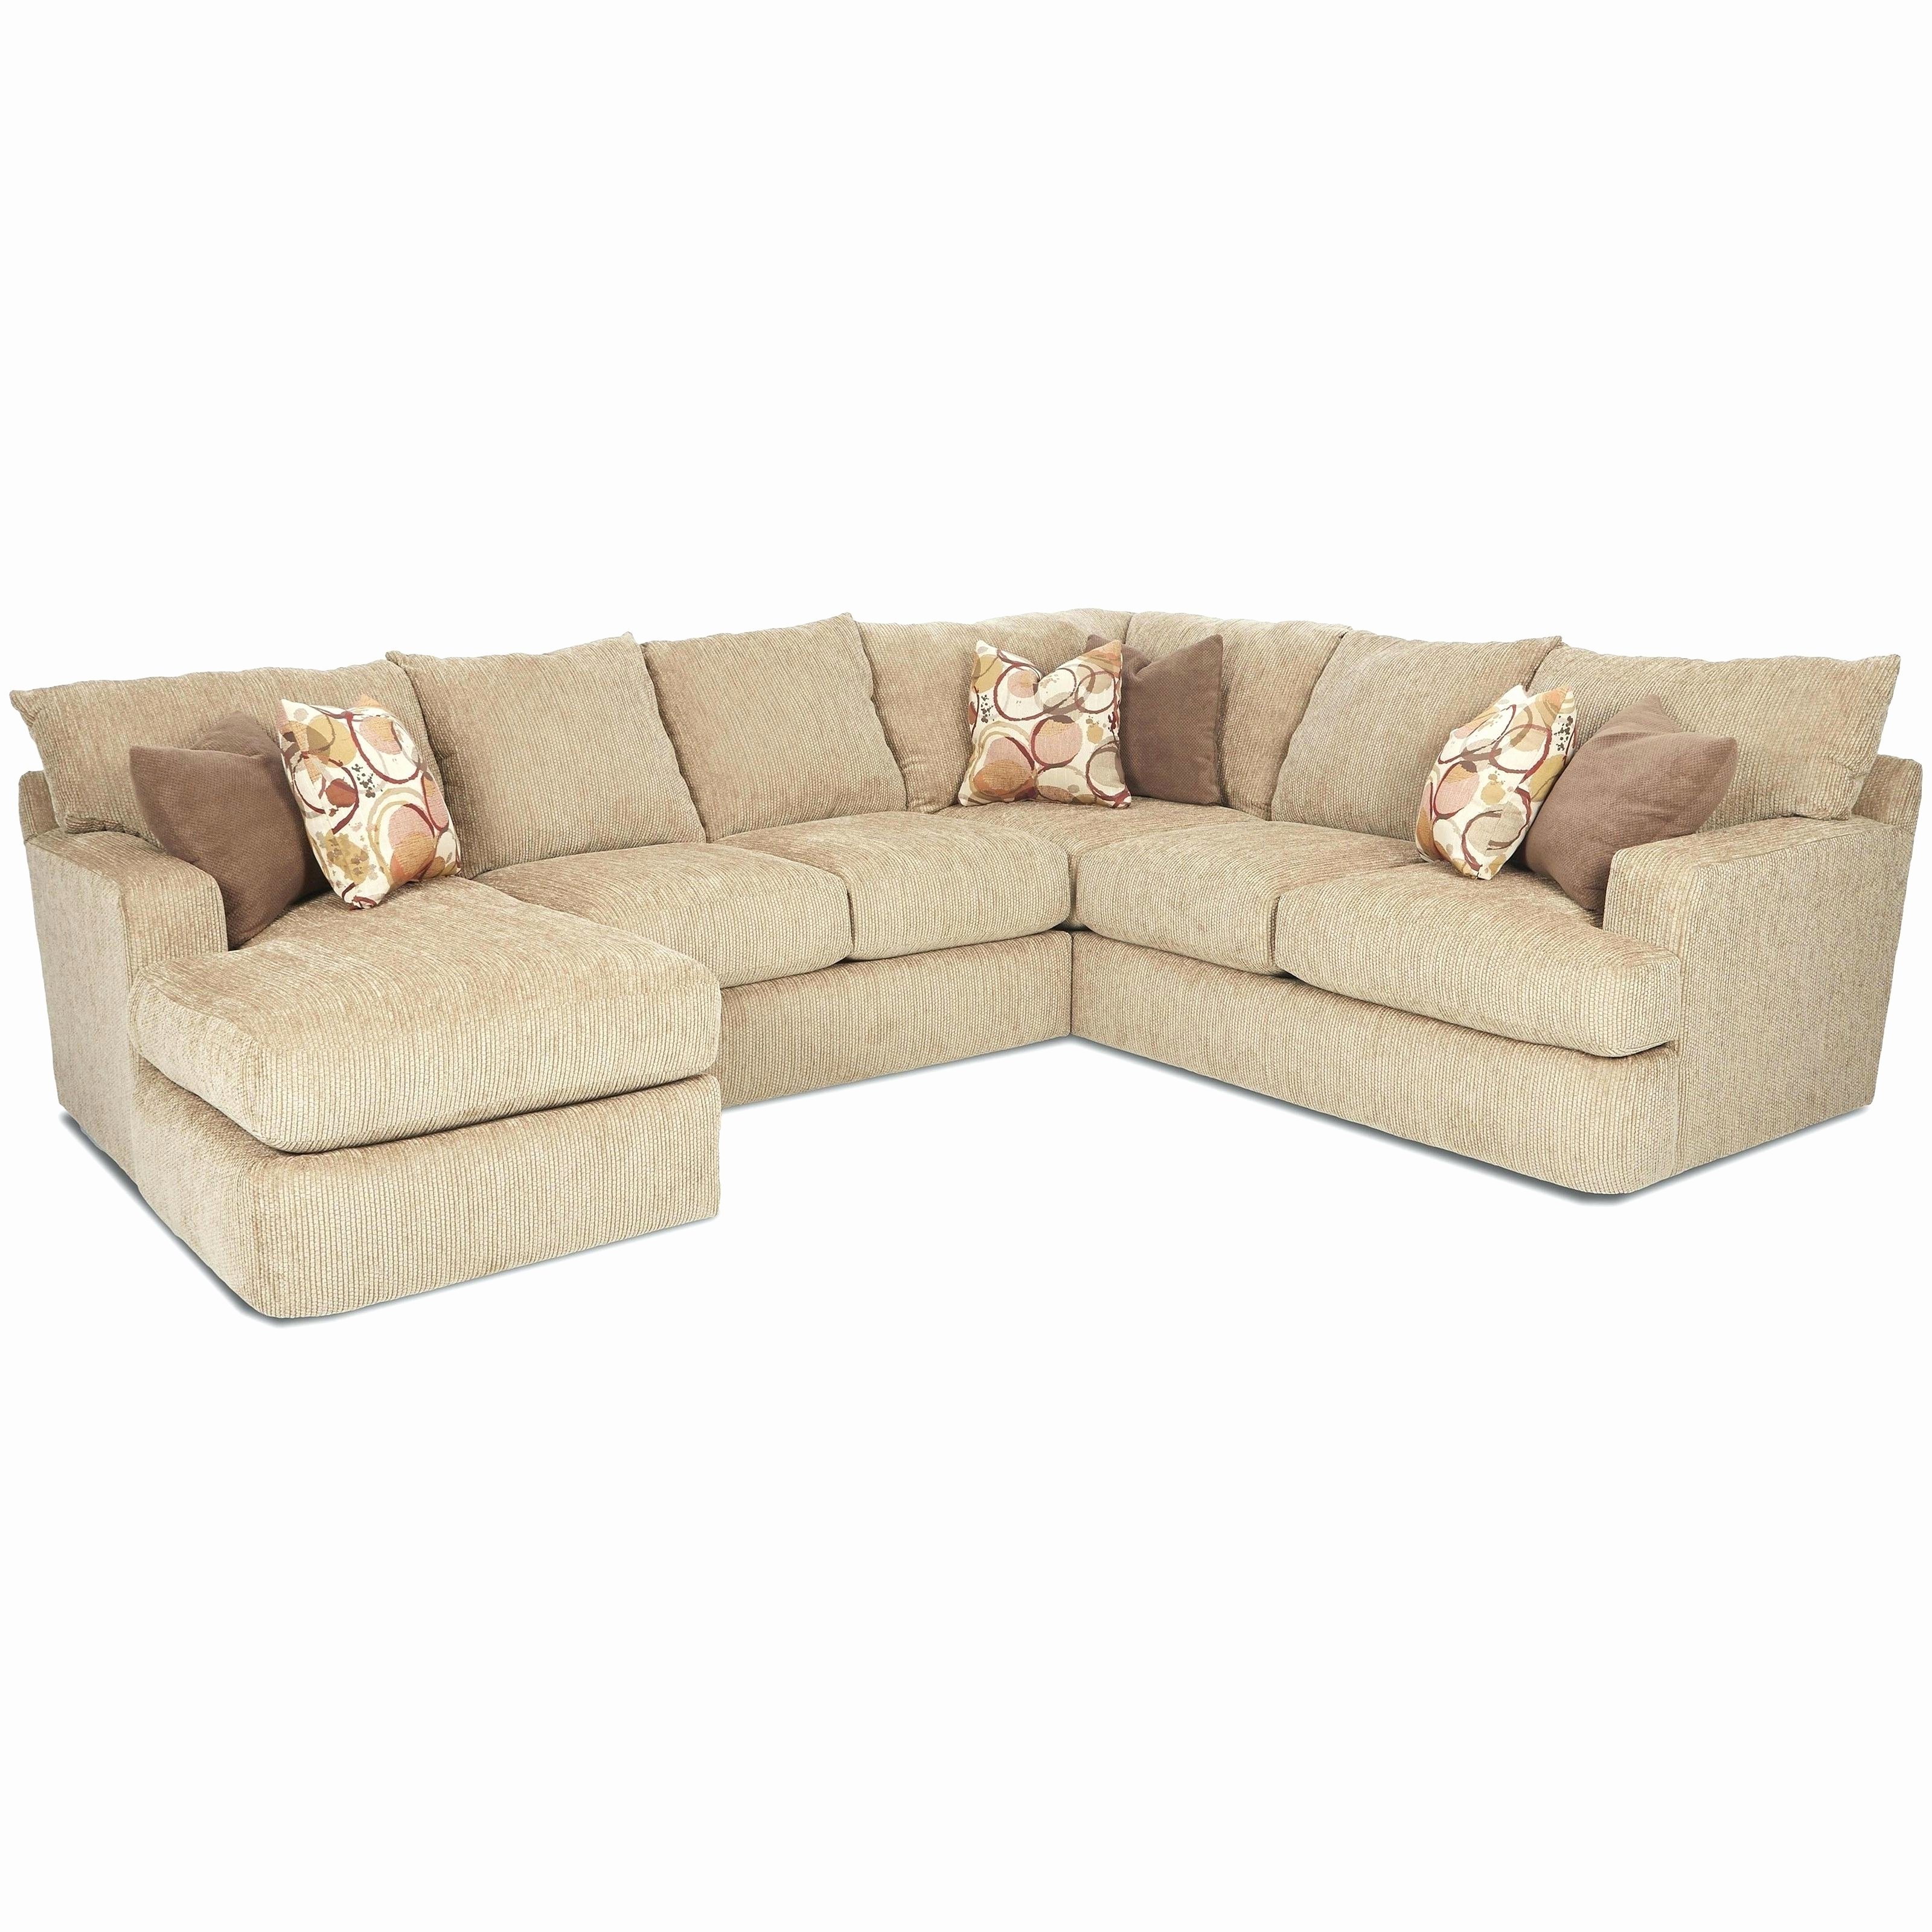 Widely Used Sofa : Lazy Boy Couches For Sale New Lazy Boy Sectional Sofa With Lazy Boy Sectional Sofas (View 15 of 20)